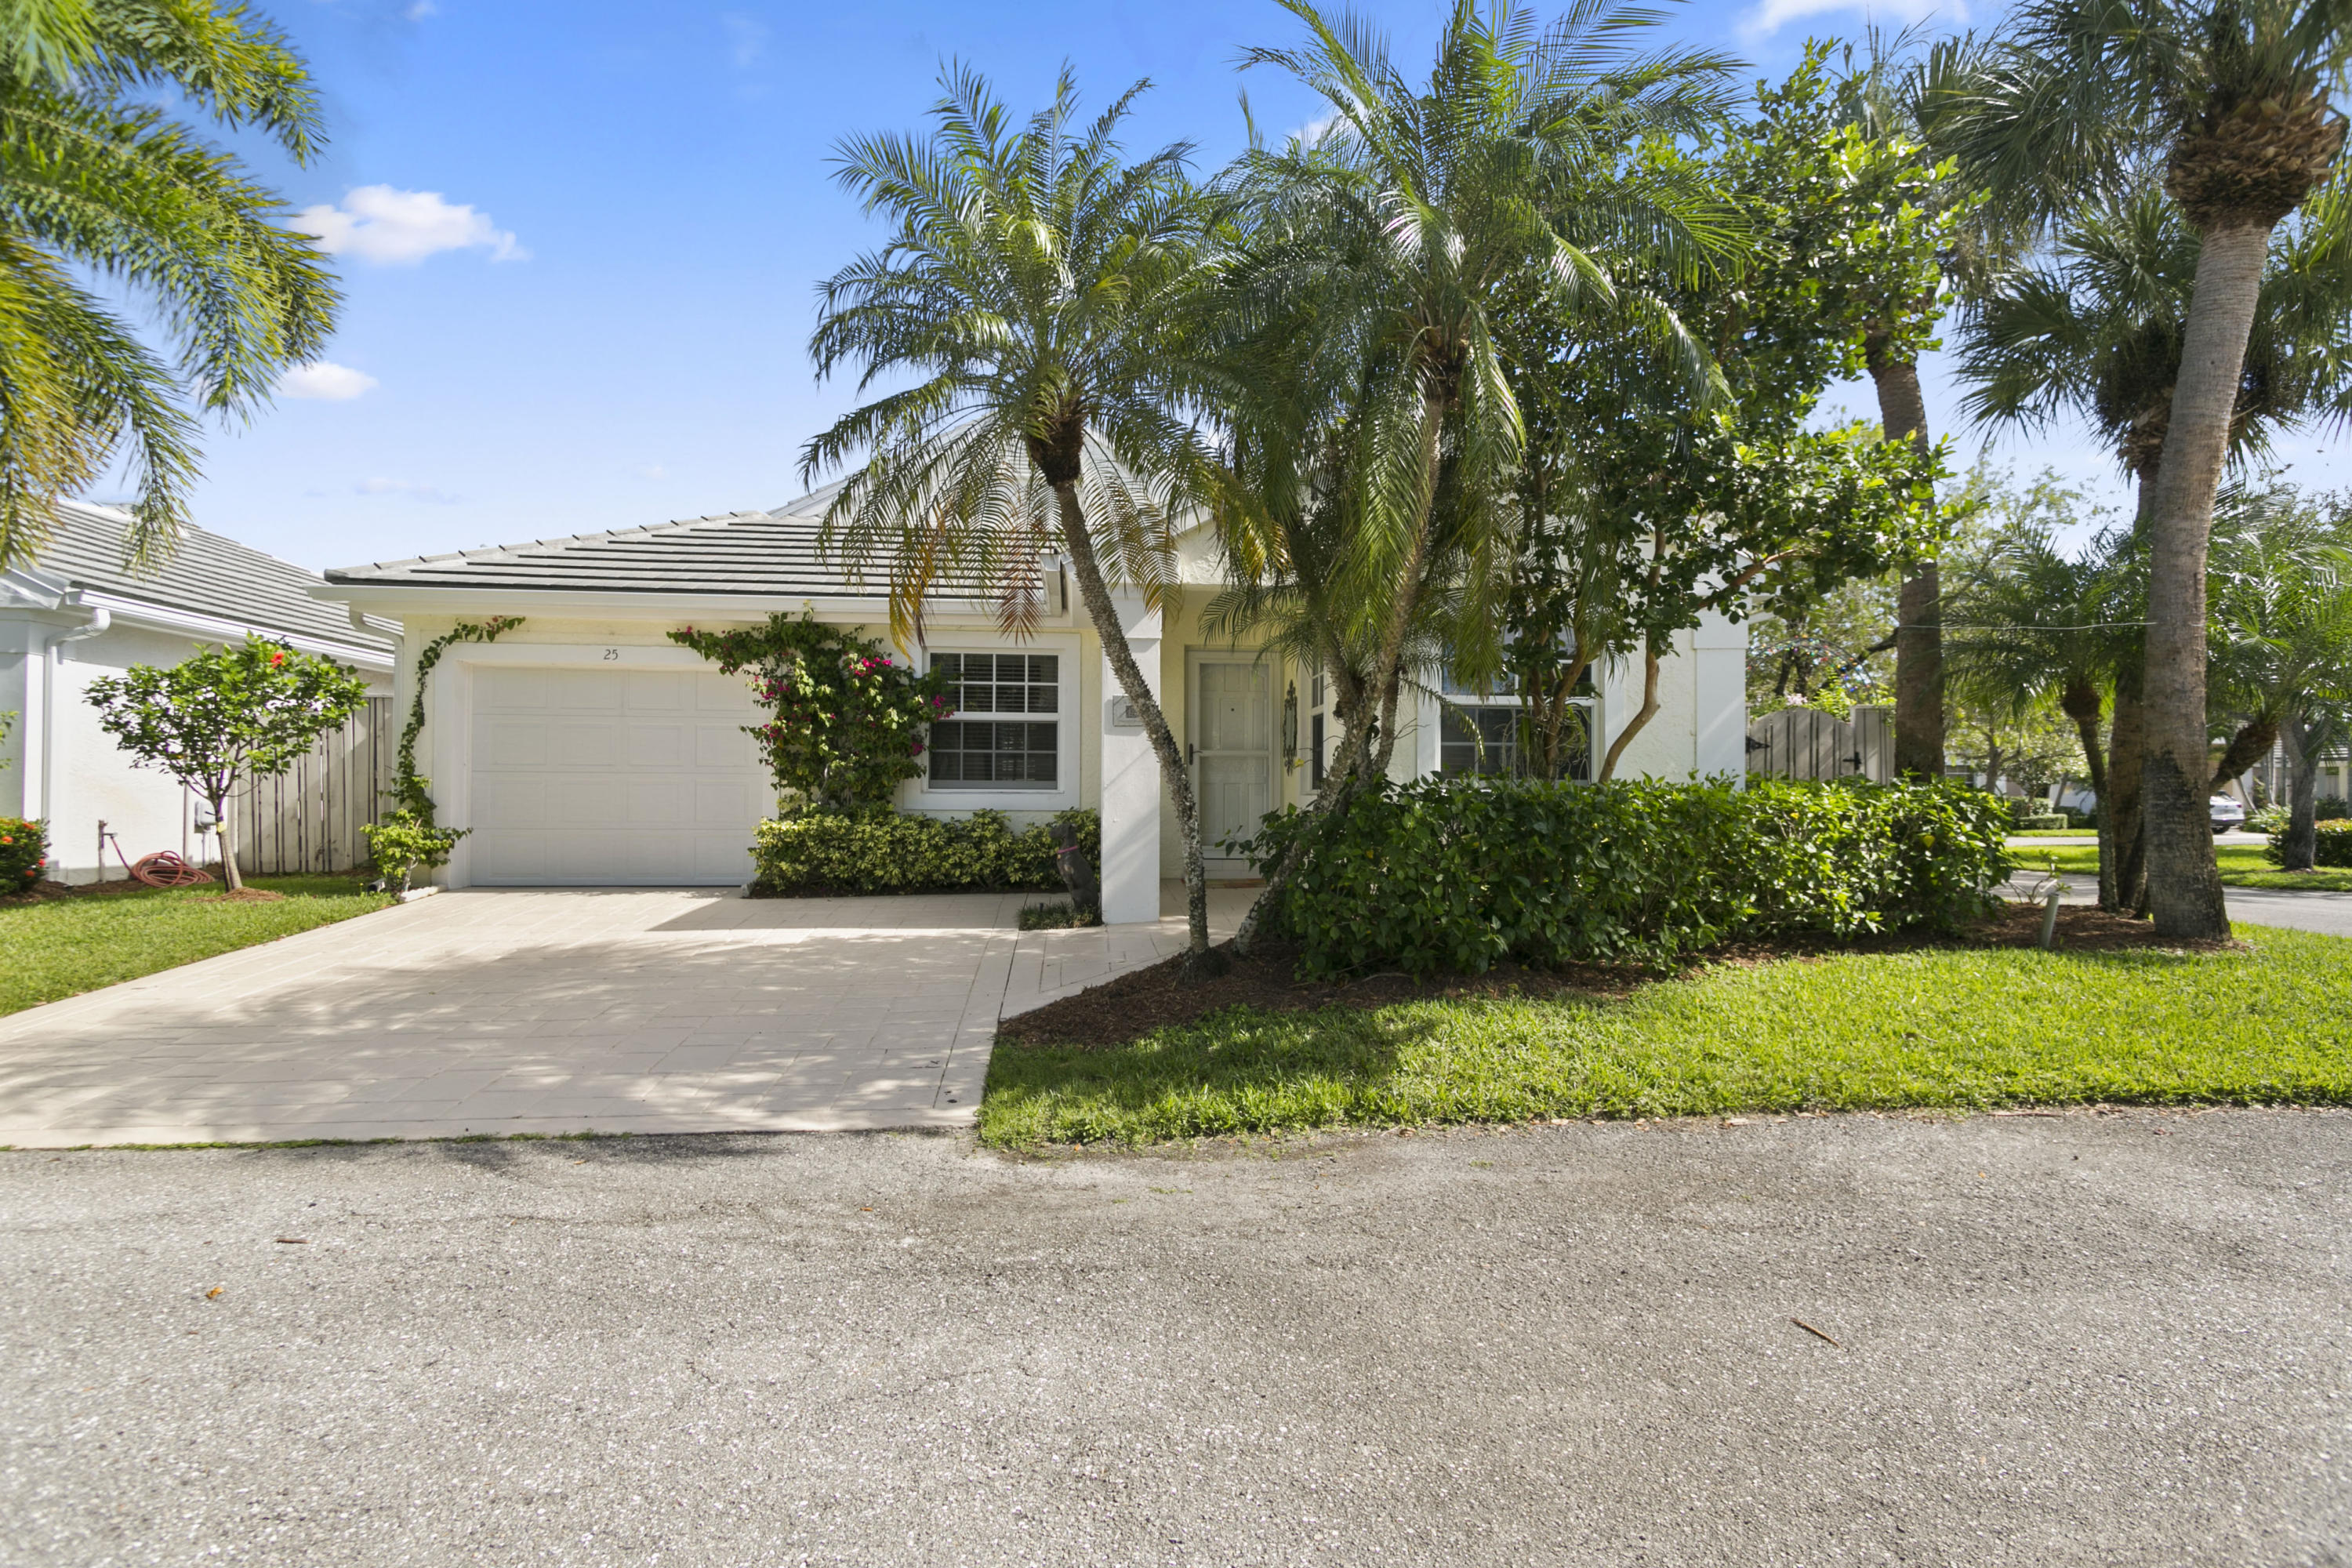 25 Governors Court, Palm Beach Gardens, Florida 33418, 2 Bedrooms Bedrooms, ,2 BathroomsBathrooms,A,Single family,Governors,RX-10480978